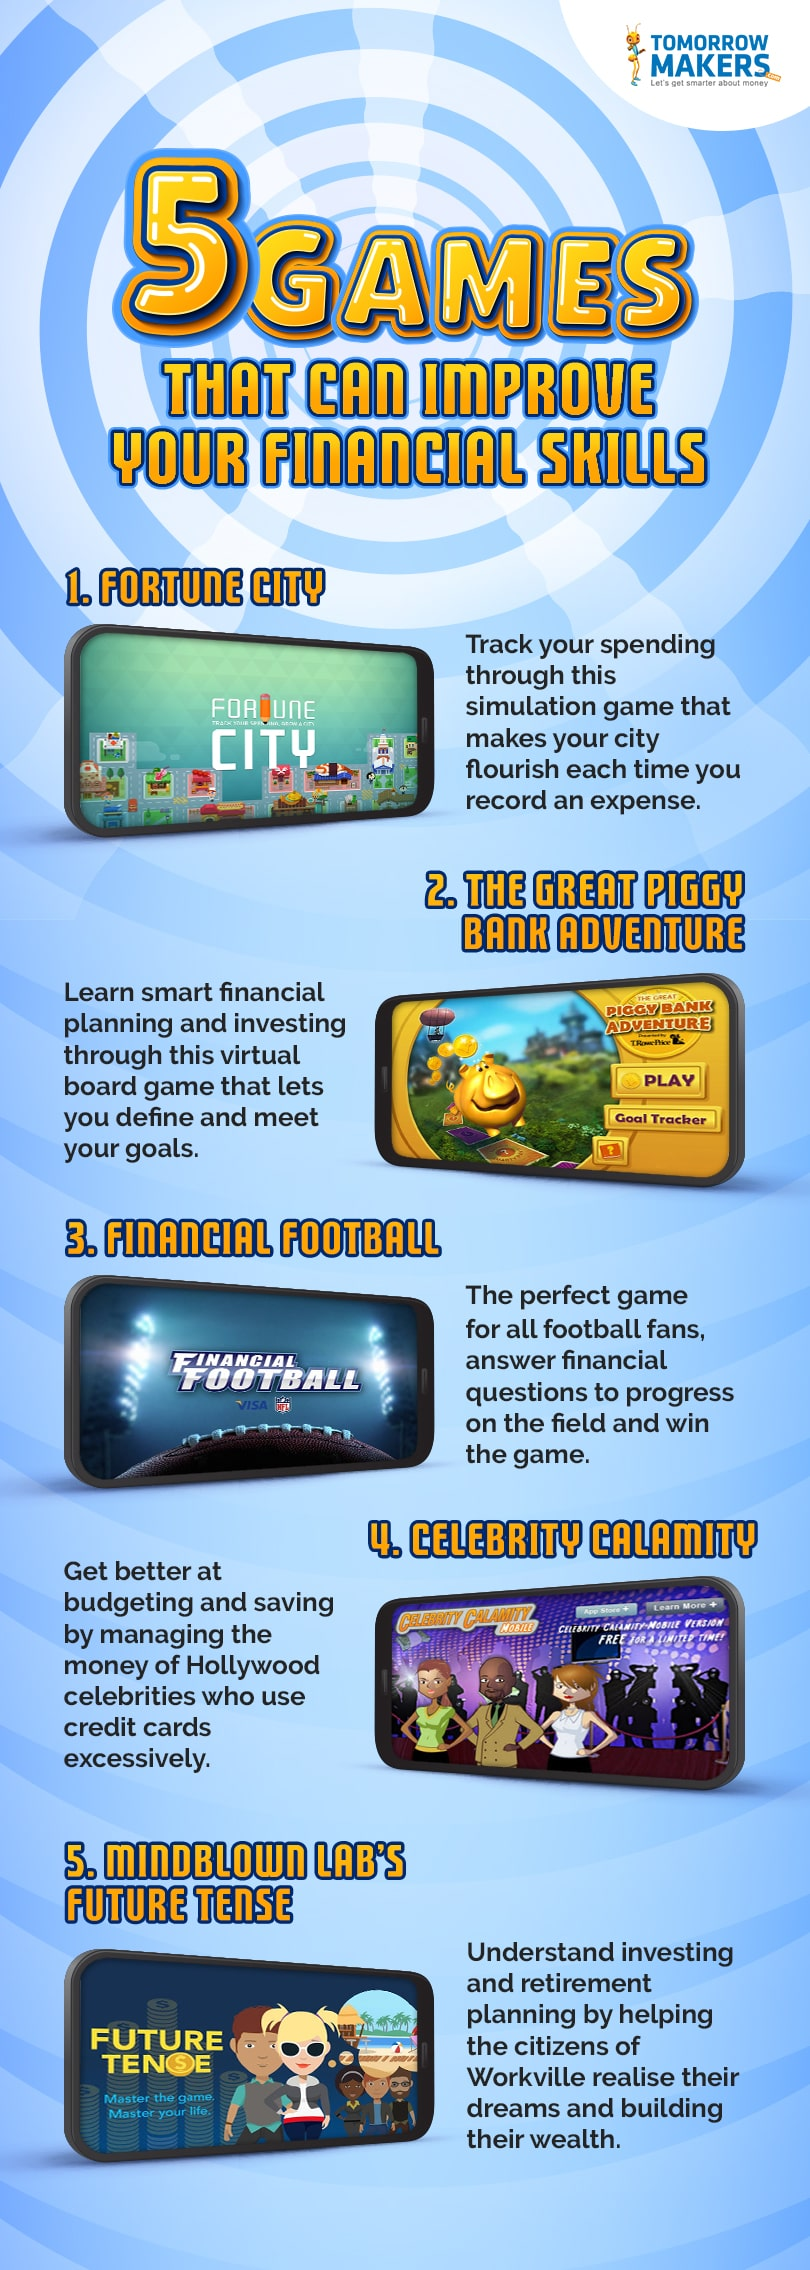 5 Games that can improve your financial skills